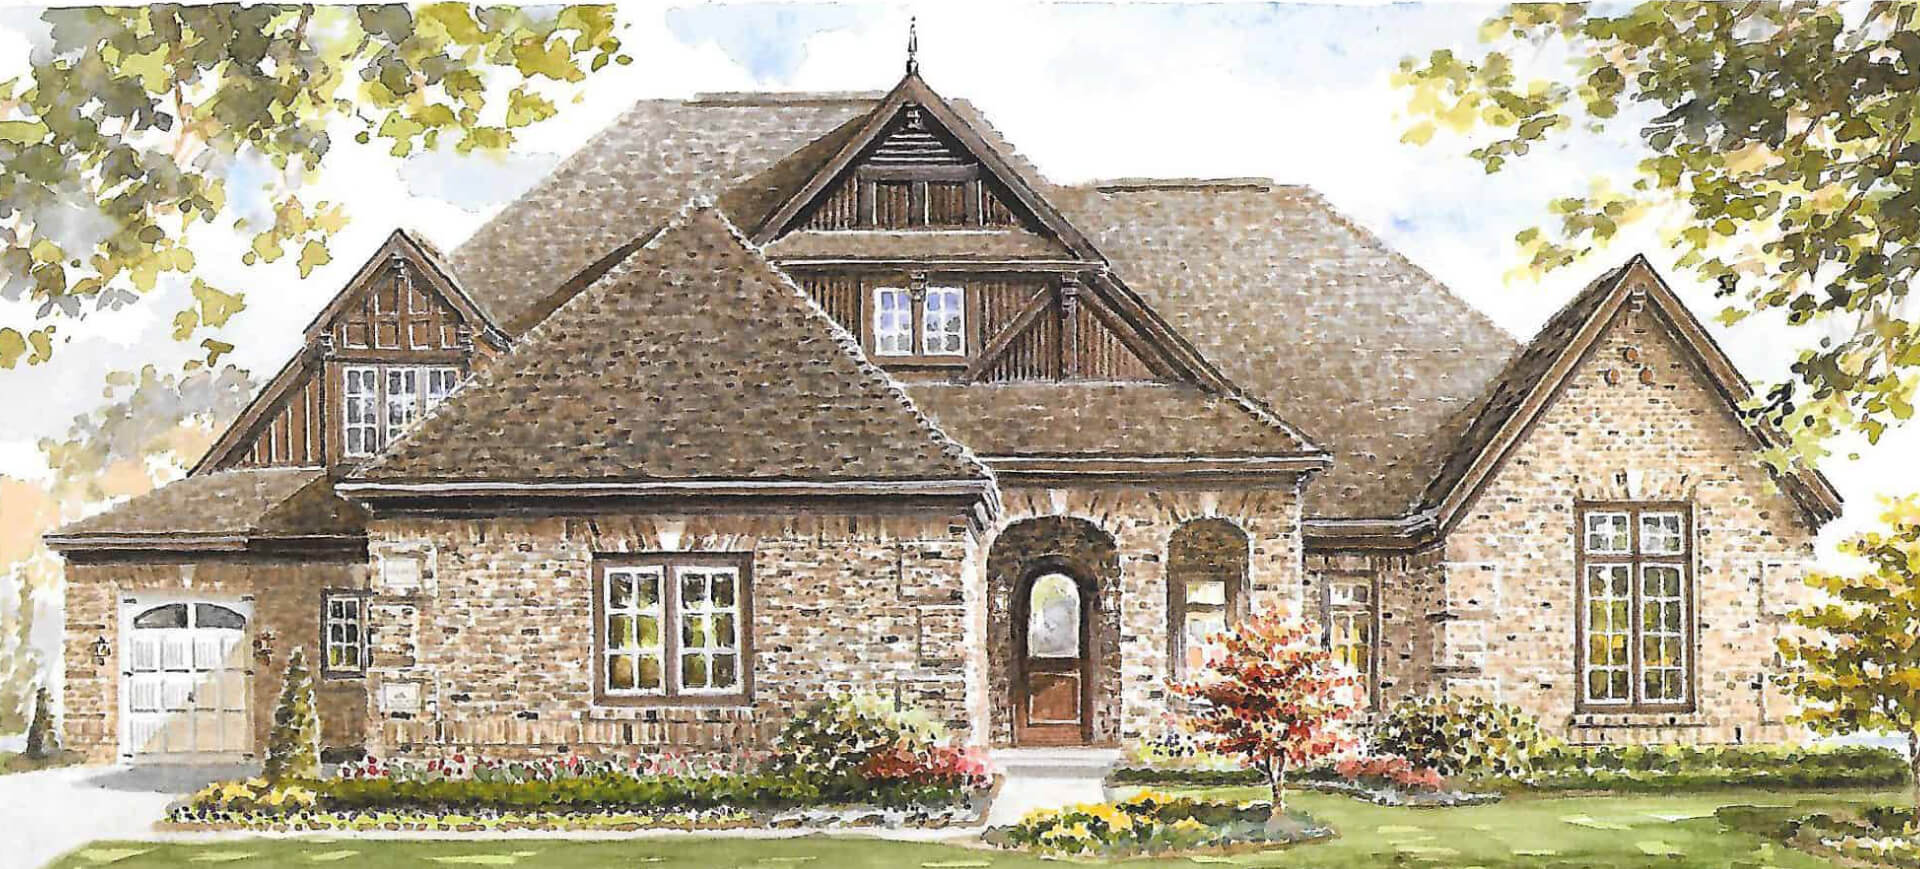 watercolored sketch of a one-story, custom built home in Carmel, IN